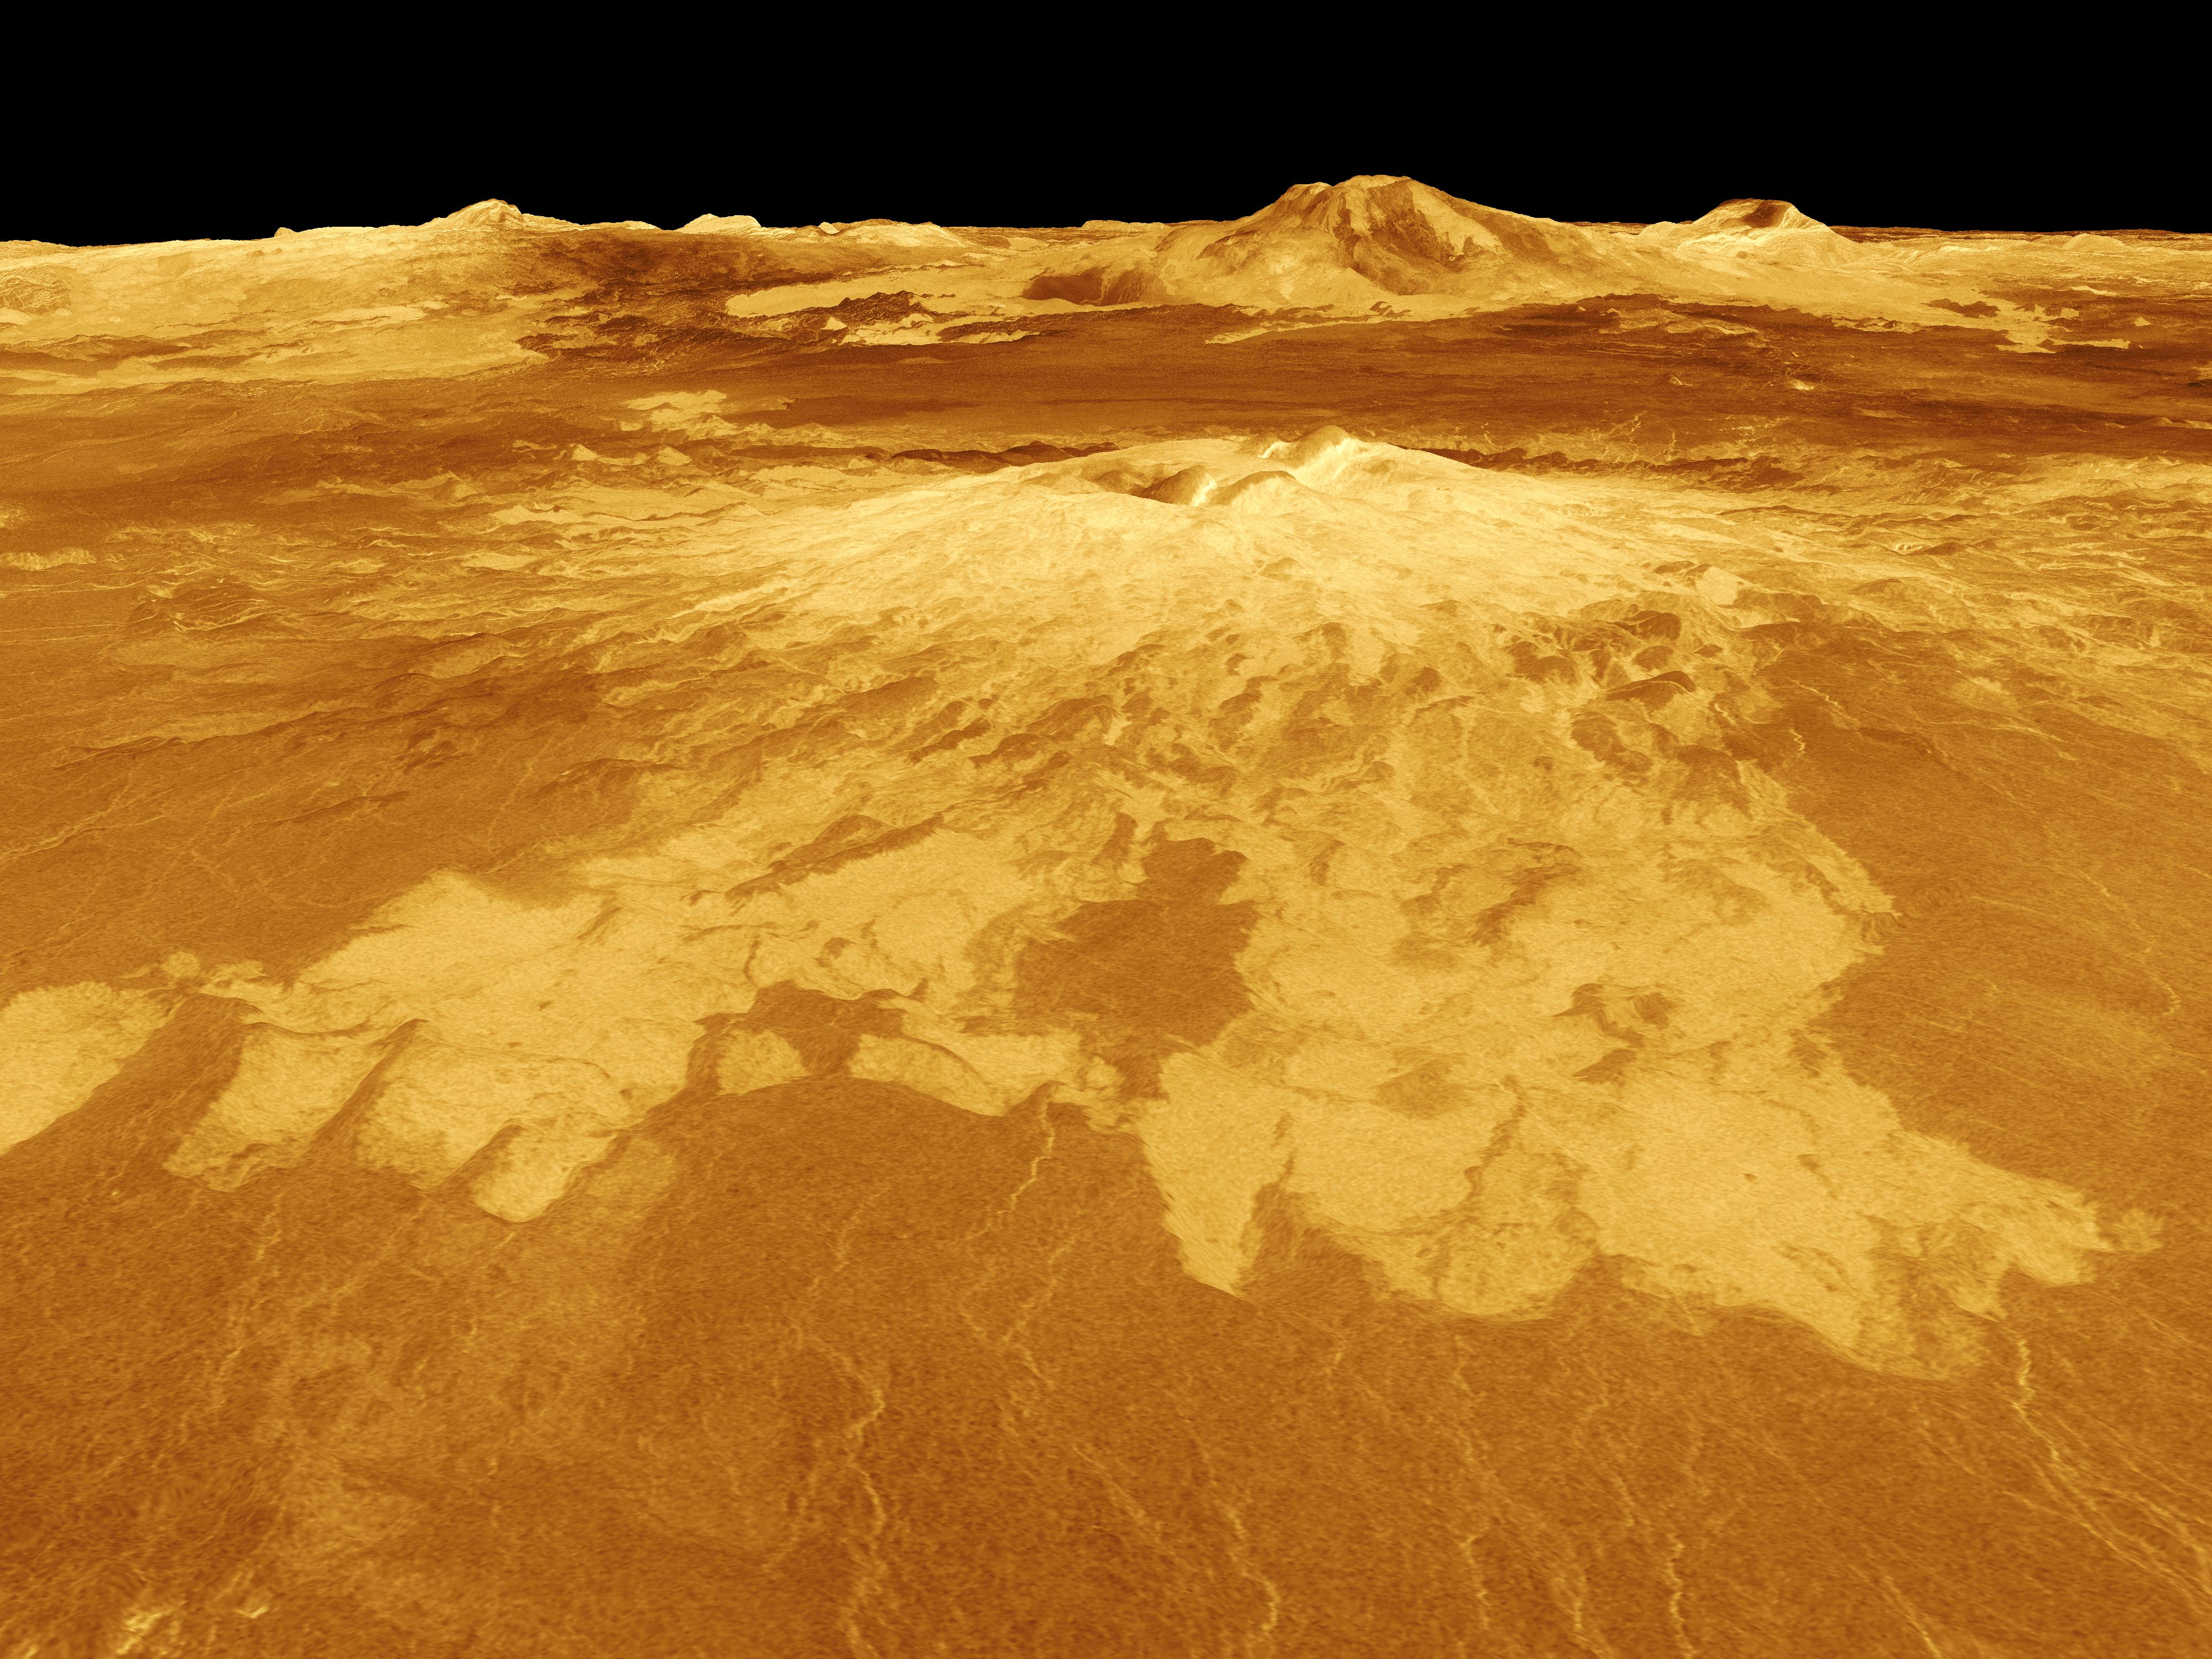 Sapas Mons, a volcano 248 miles across and nearly 1mile high, is visible in the center of this image of the surface of Venus. Credit: NASA Jet Propulsion Laboratory.